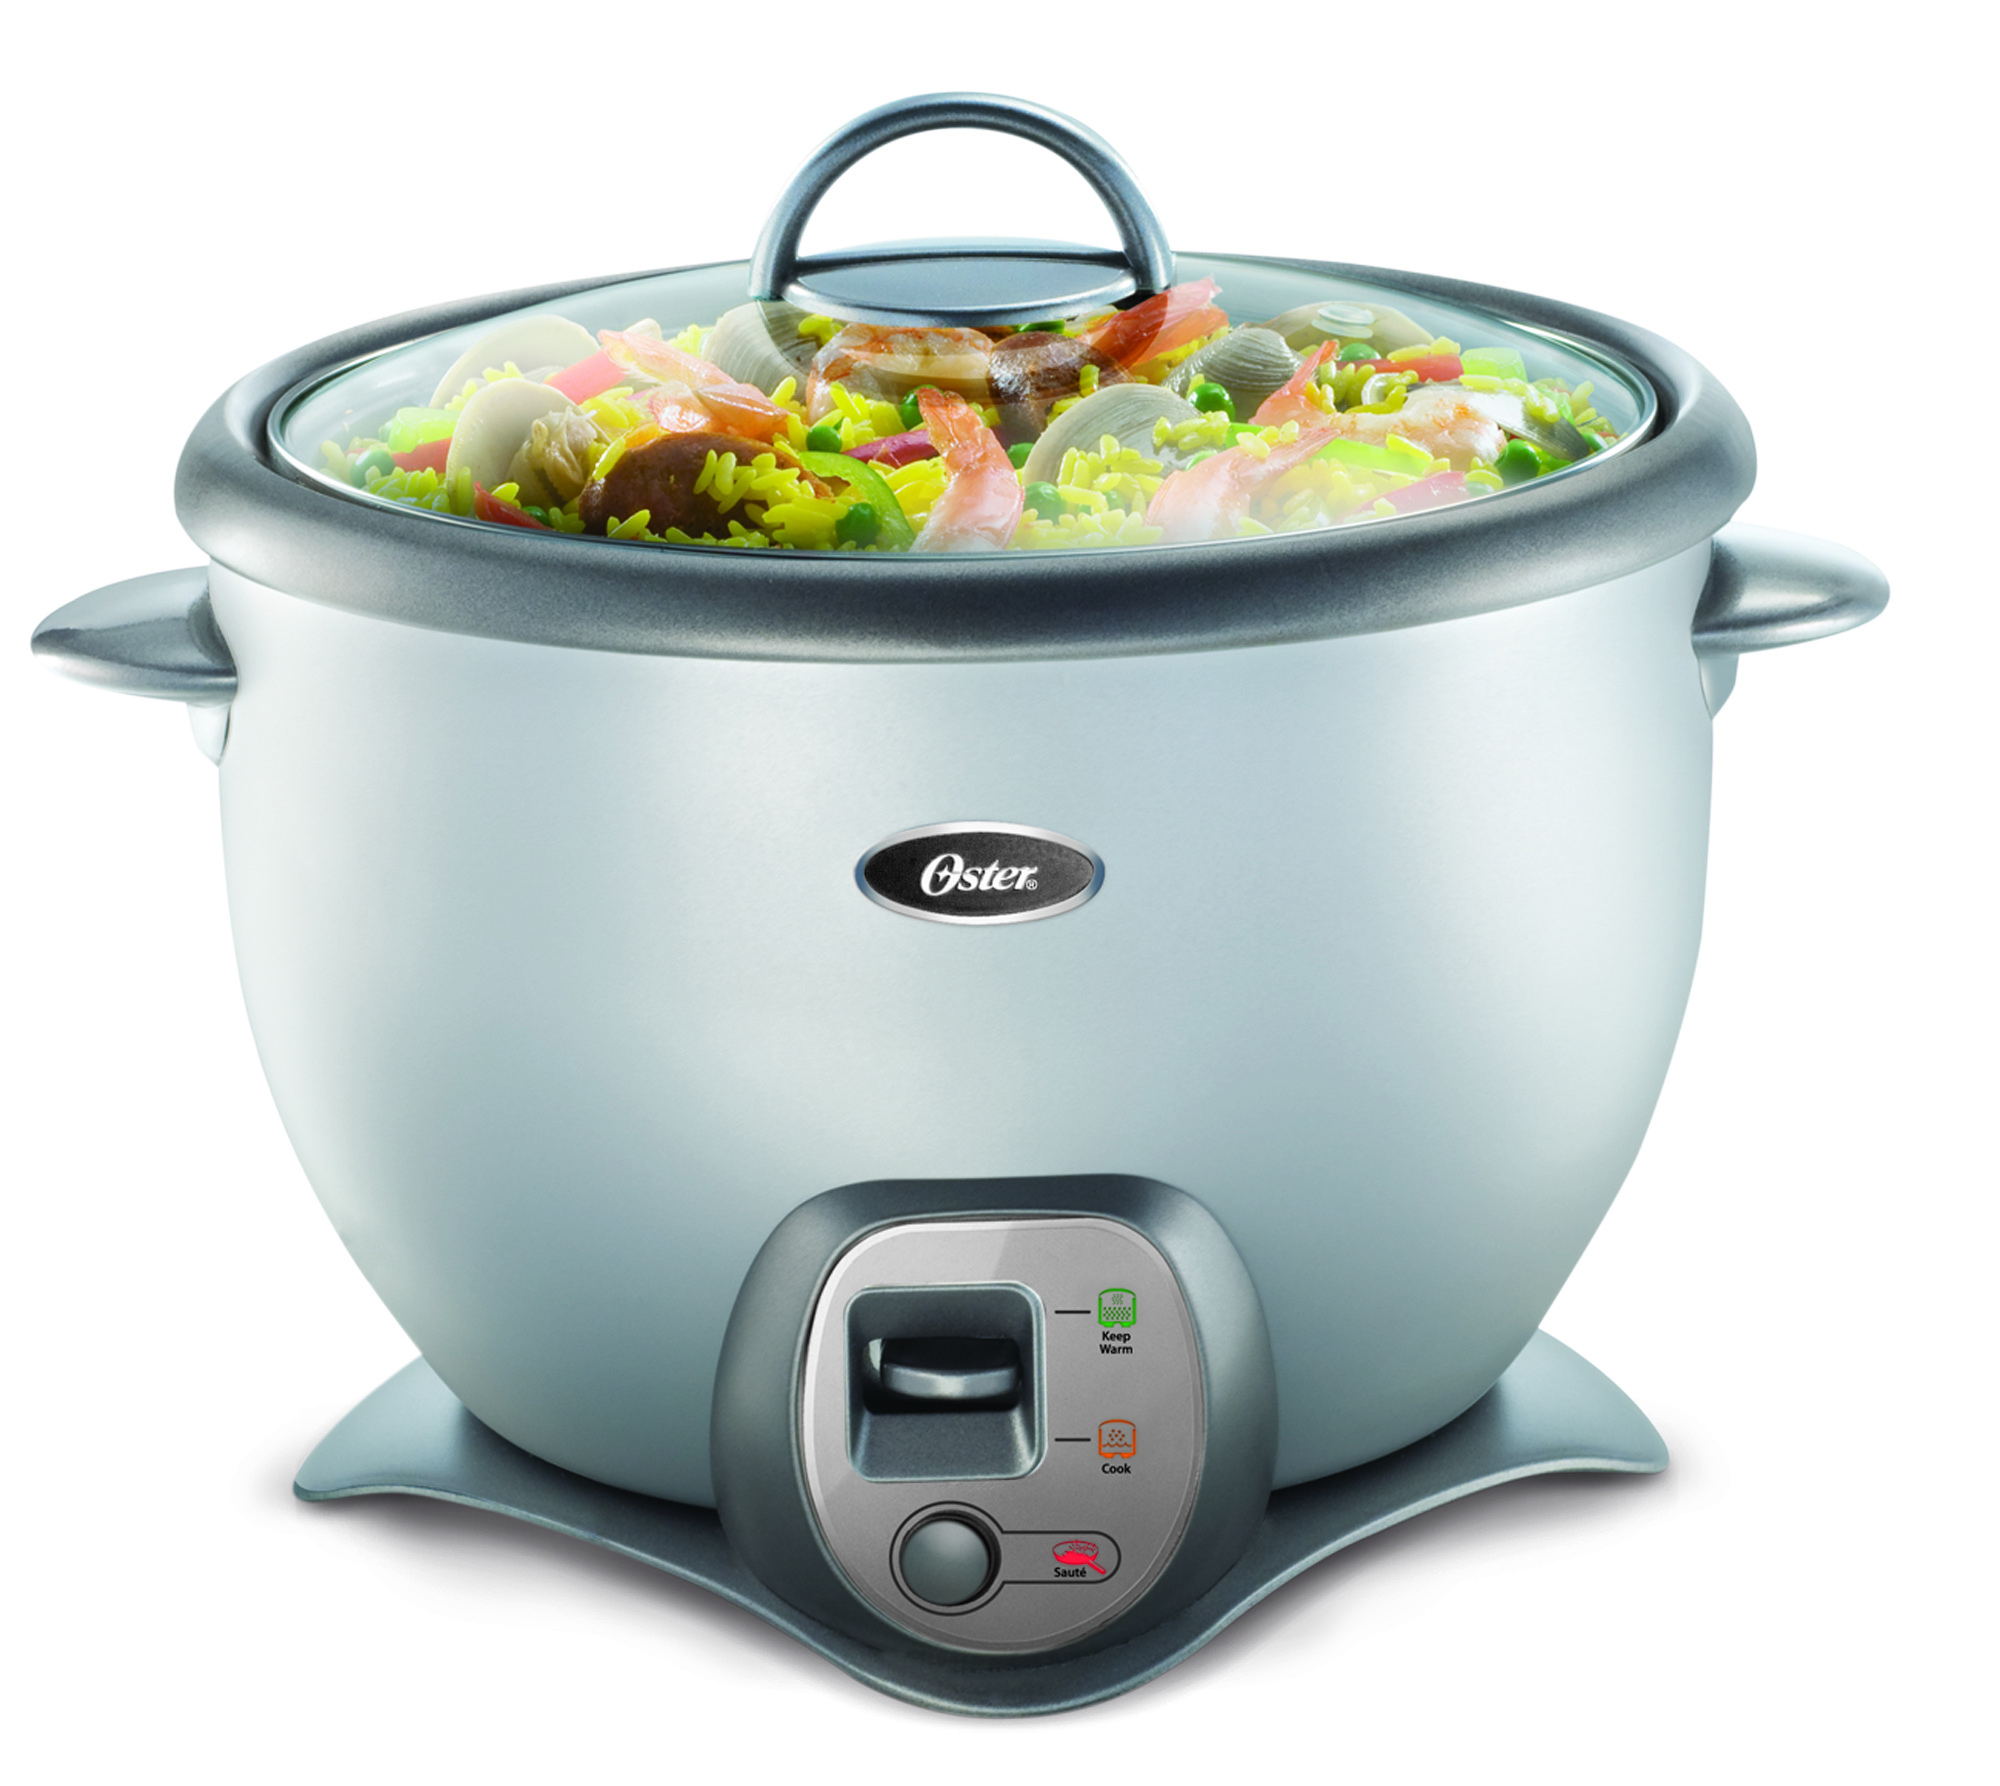 Oster_20-cup_Saute_Rice_Cooker.HIGH_RES.jpg